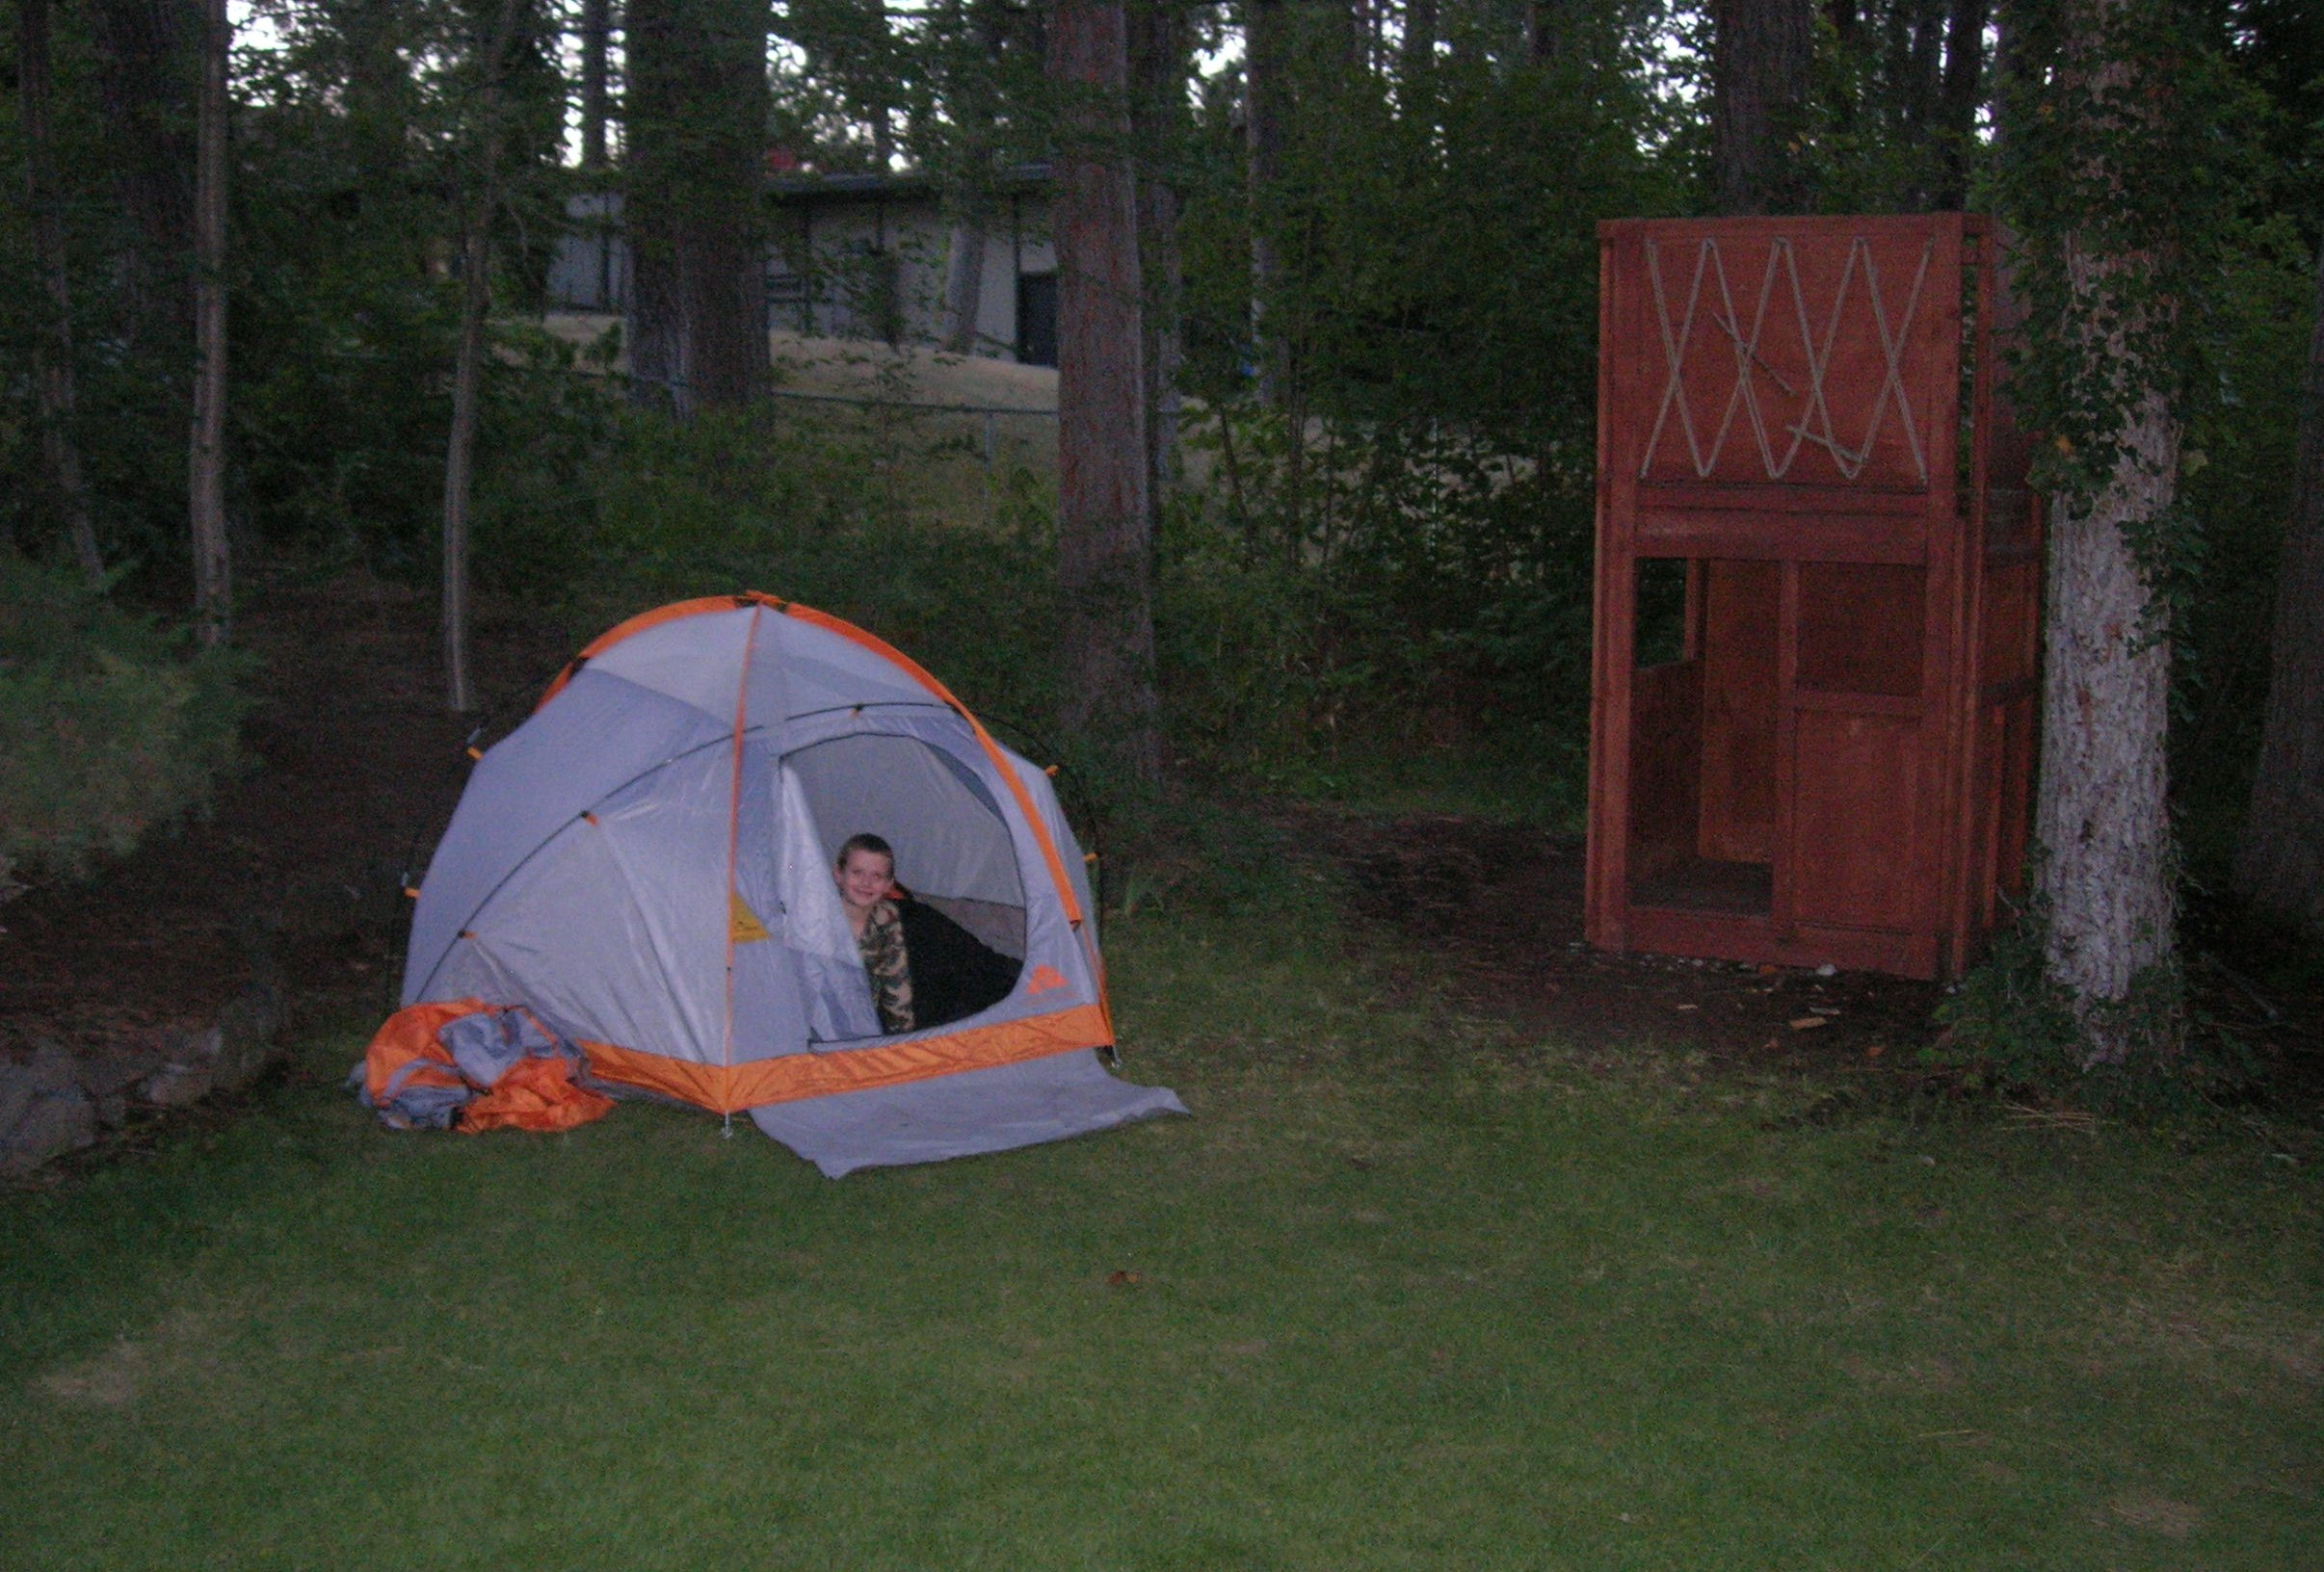 Sleeping In Tent In Backyard : Camping in the Backyard  Susans Homeschool Blog Susans Homeschool